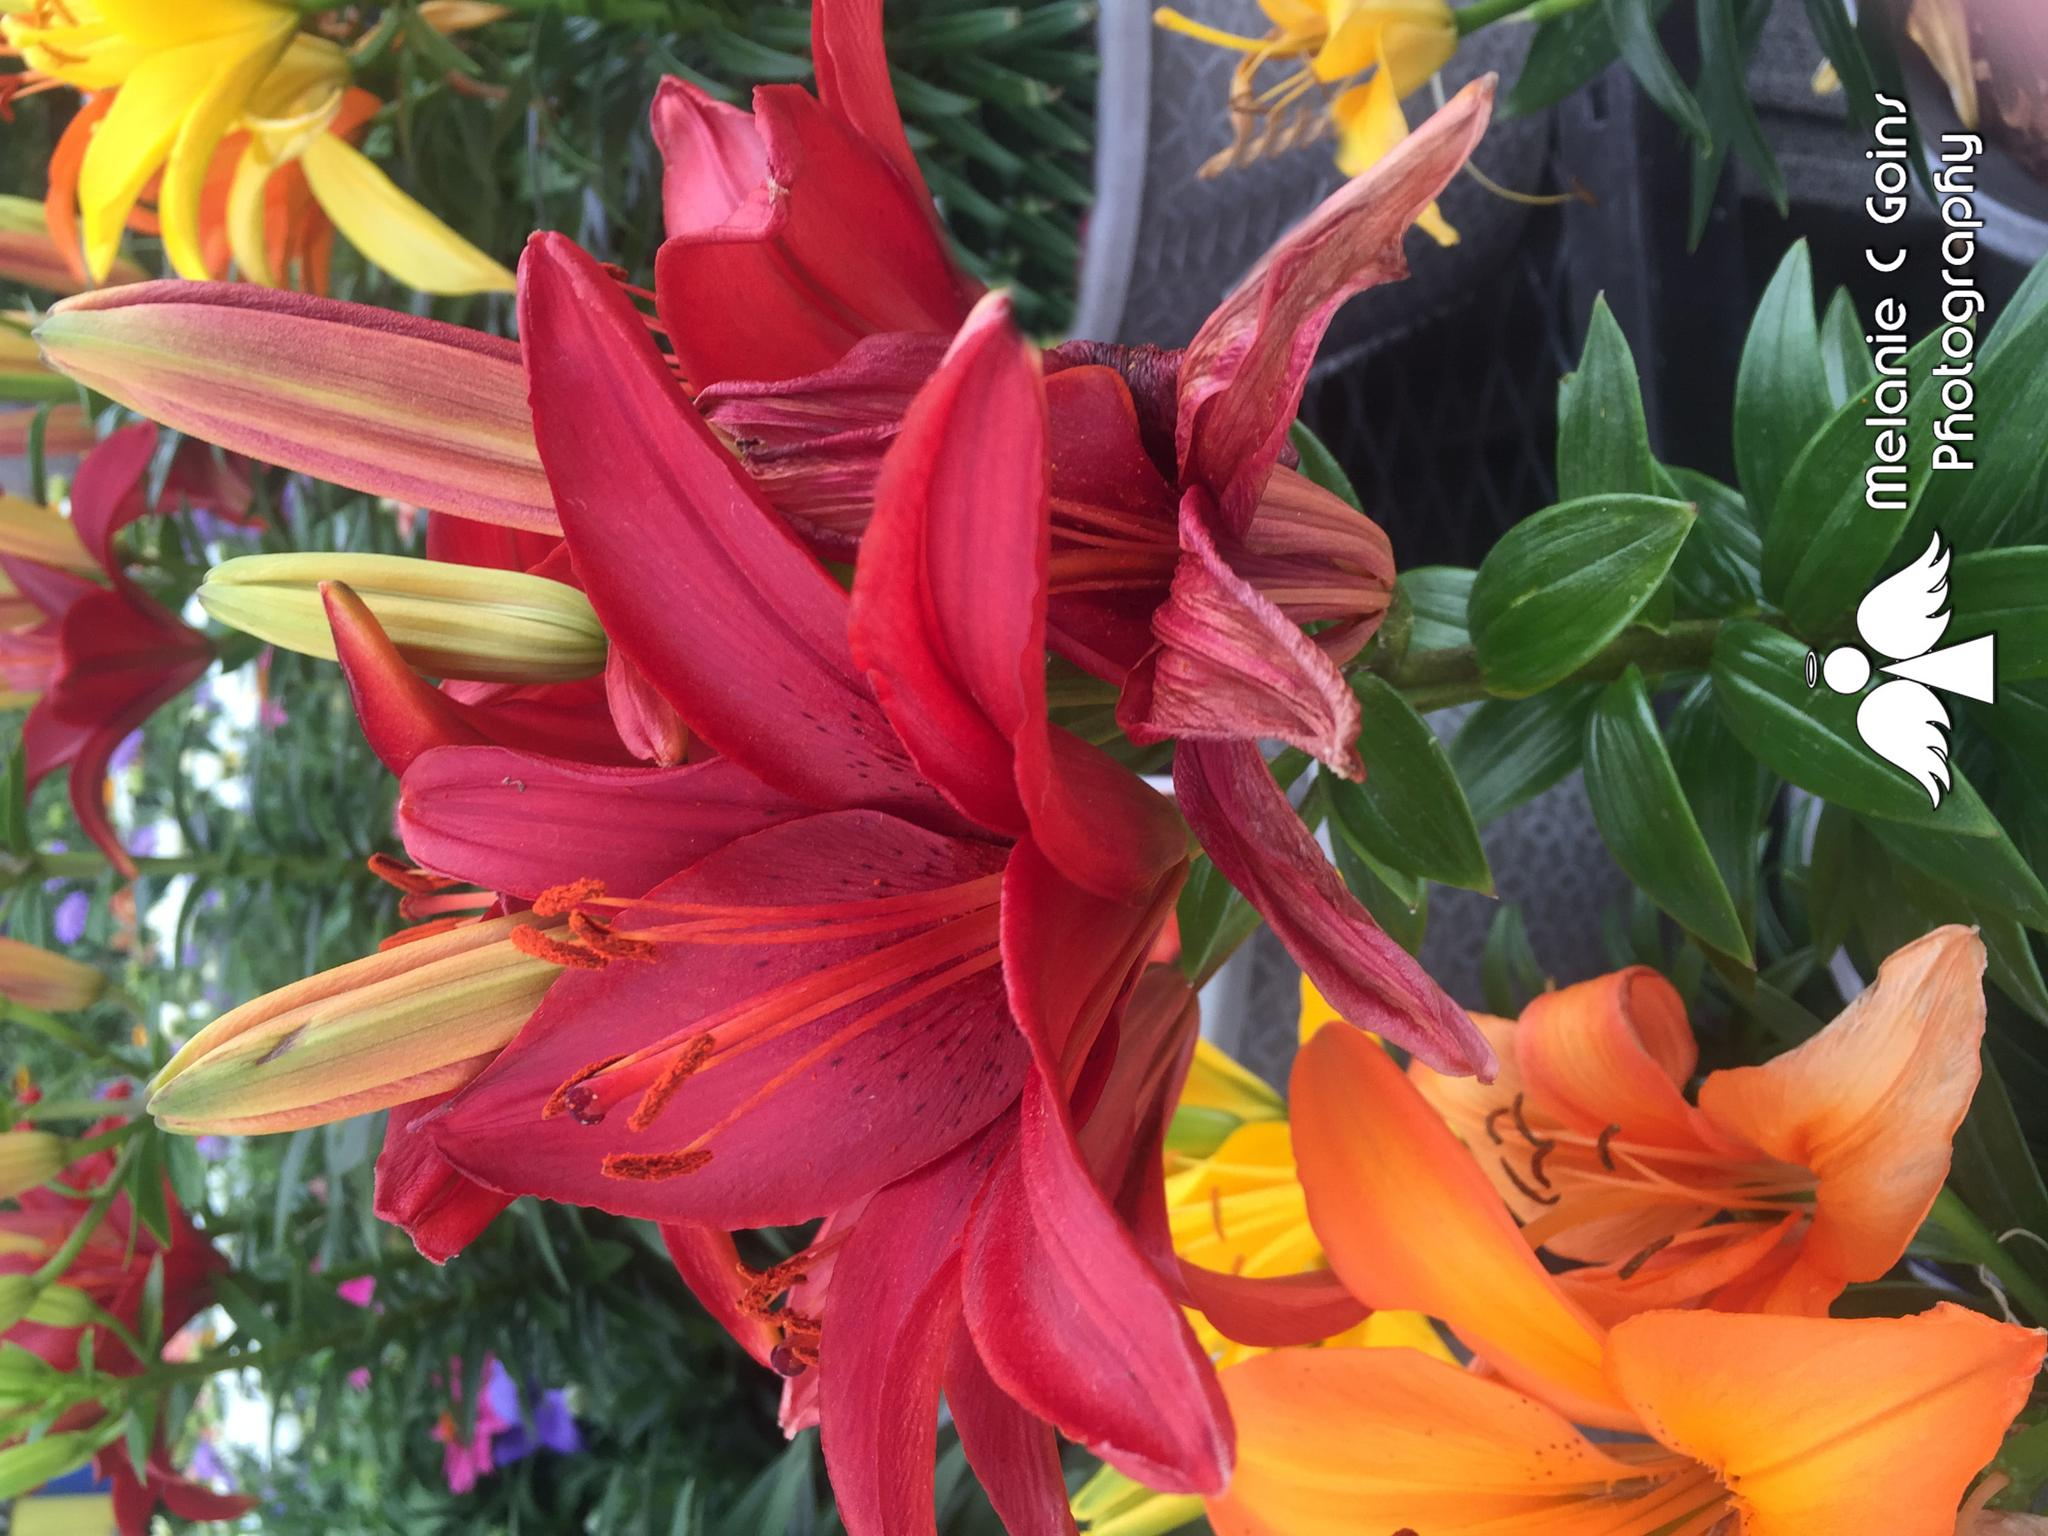 Group Of Lilys by melanie.goins